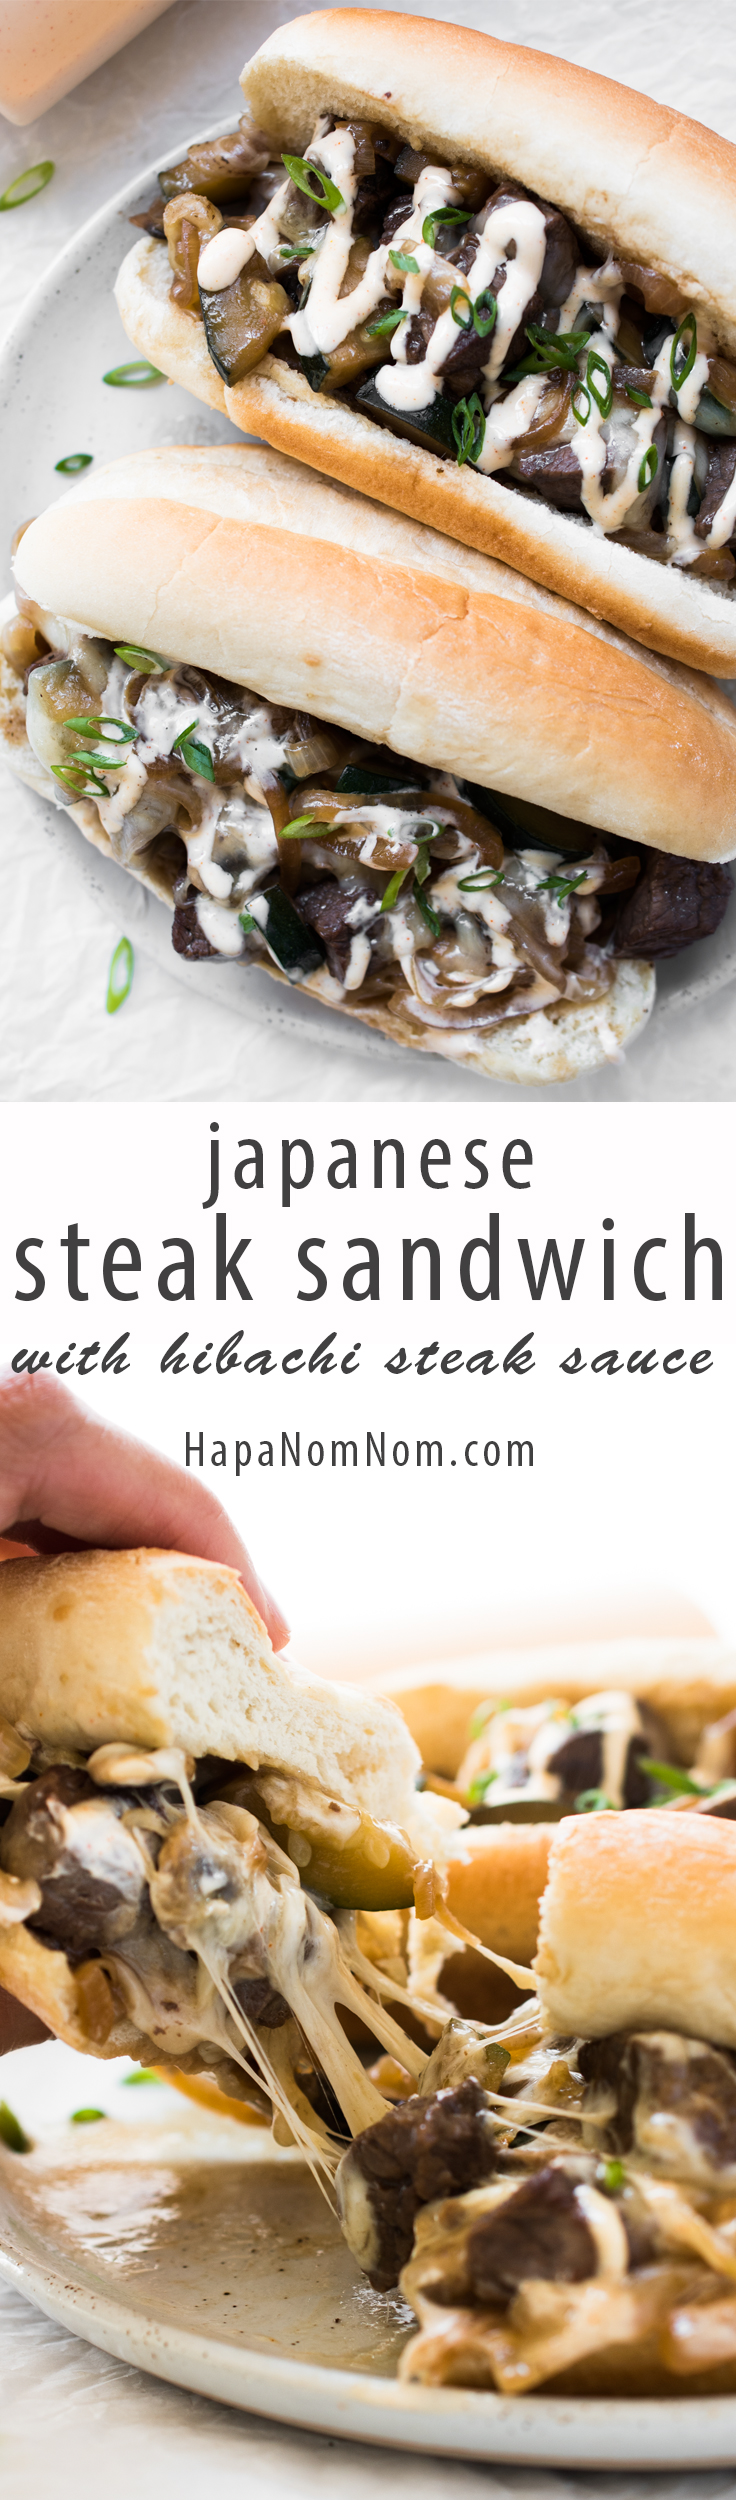 Japanese Steak Sandwich with Hibachi Steak Sauce - It's a bit of Japanese steakhouse meets a Philly cheese steak. And yes, it's as awesome as it sounds! This is like shovel into your mouth, don't care who see's you dripping steak juice all over, kind of awesome!